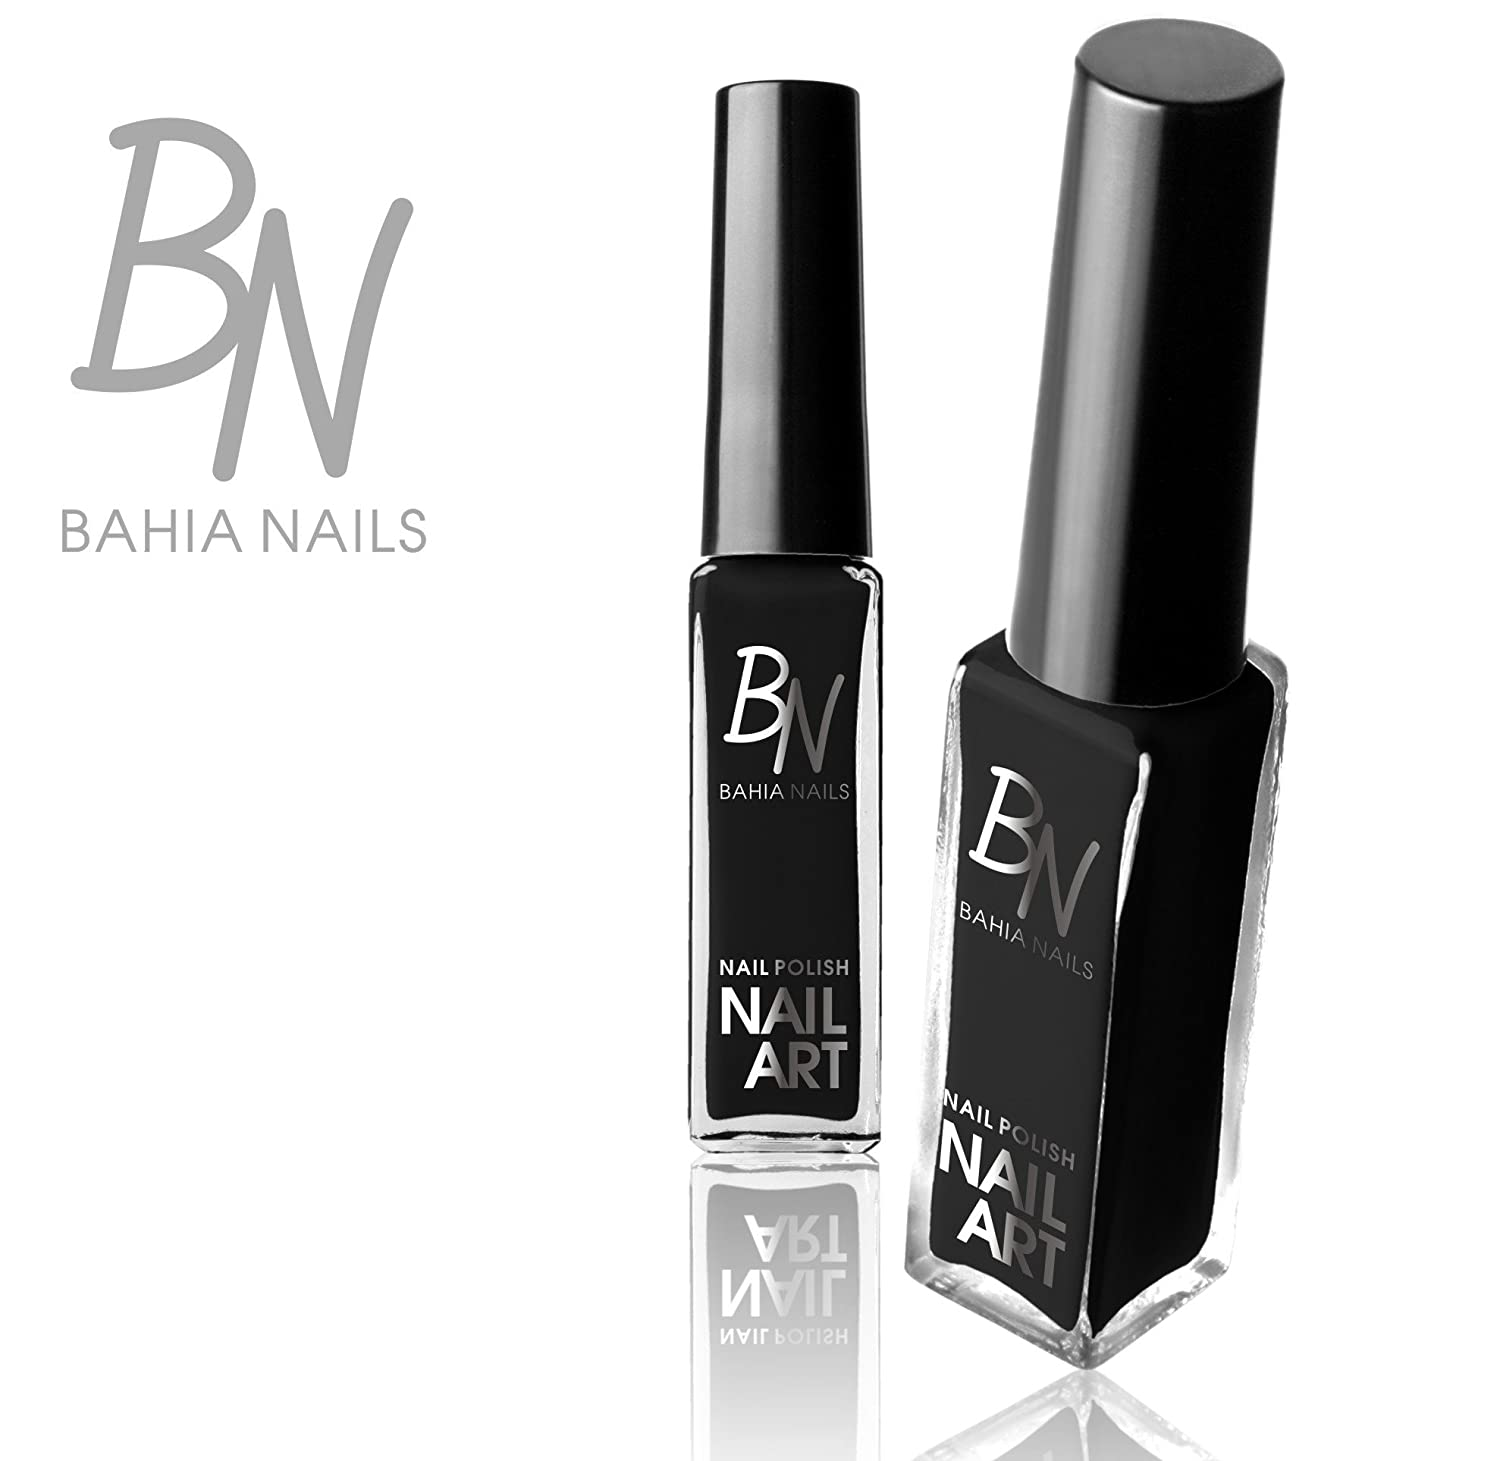 Bahia nails -nail art liner striper black